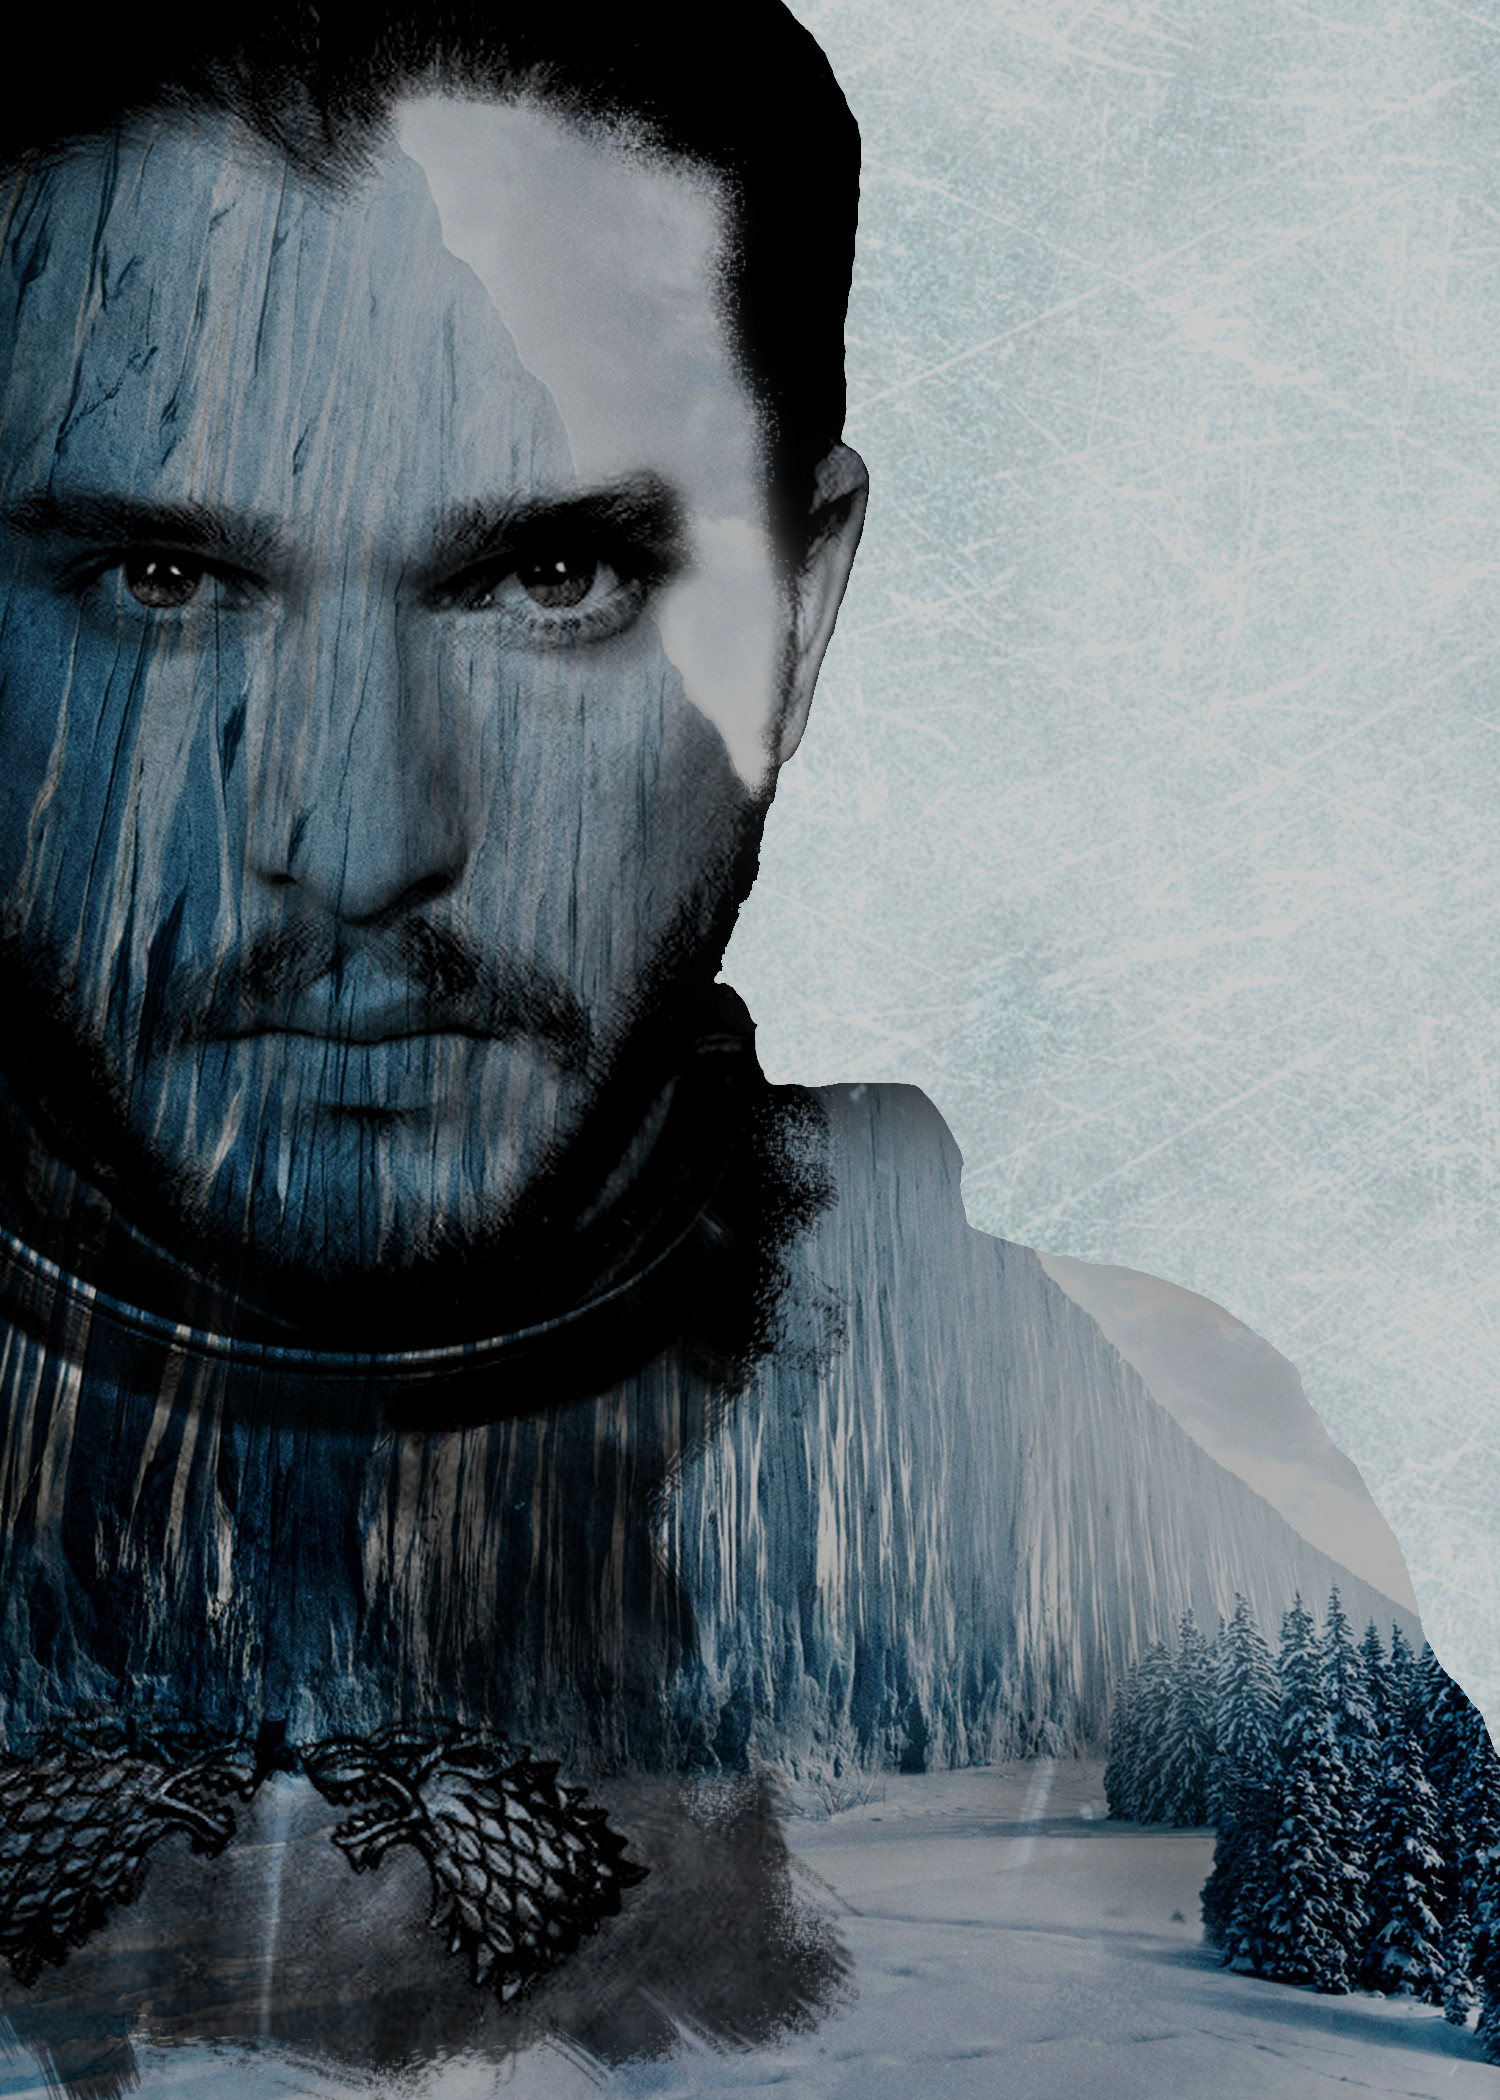 Res: 1500x2100, Everything[EVERYTHING] Jon Snow Wallpaper, for the wait for season 8 is  long and full of terrors ...